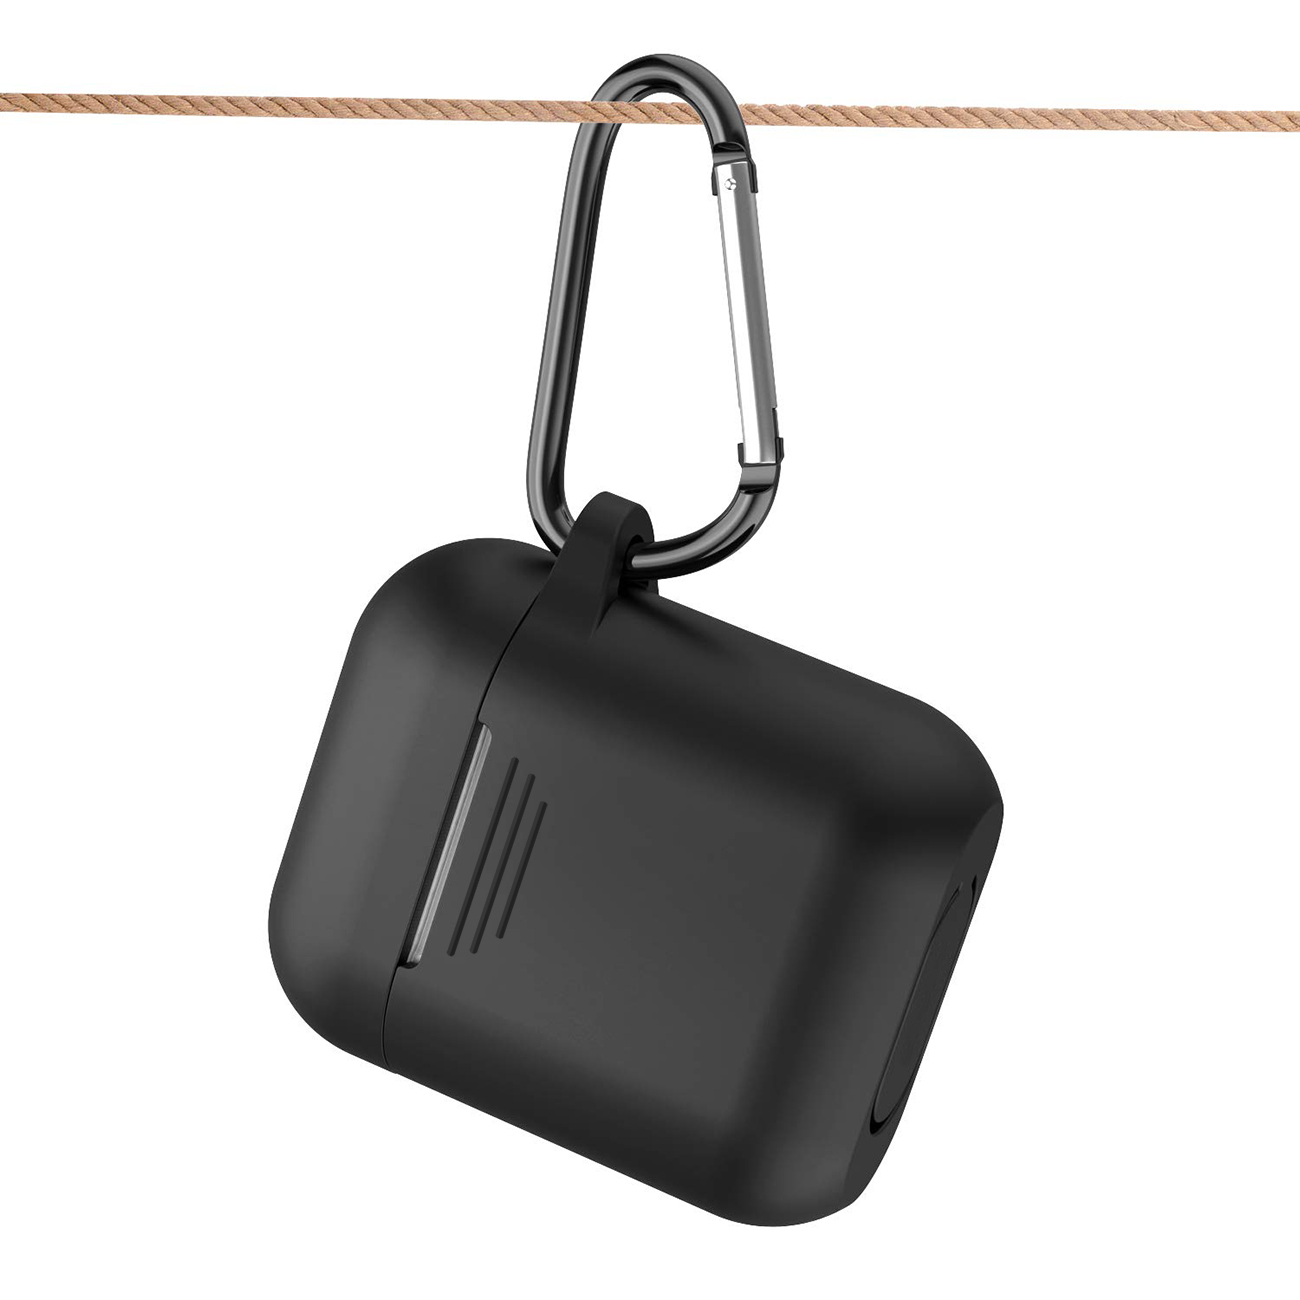 Silicone Case for Airpods in Black